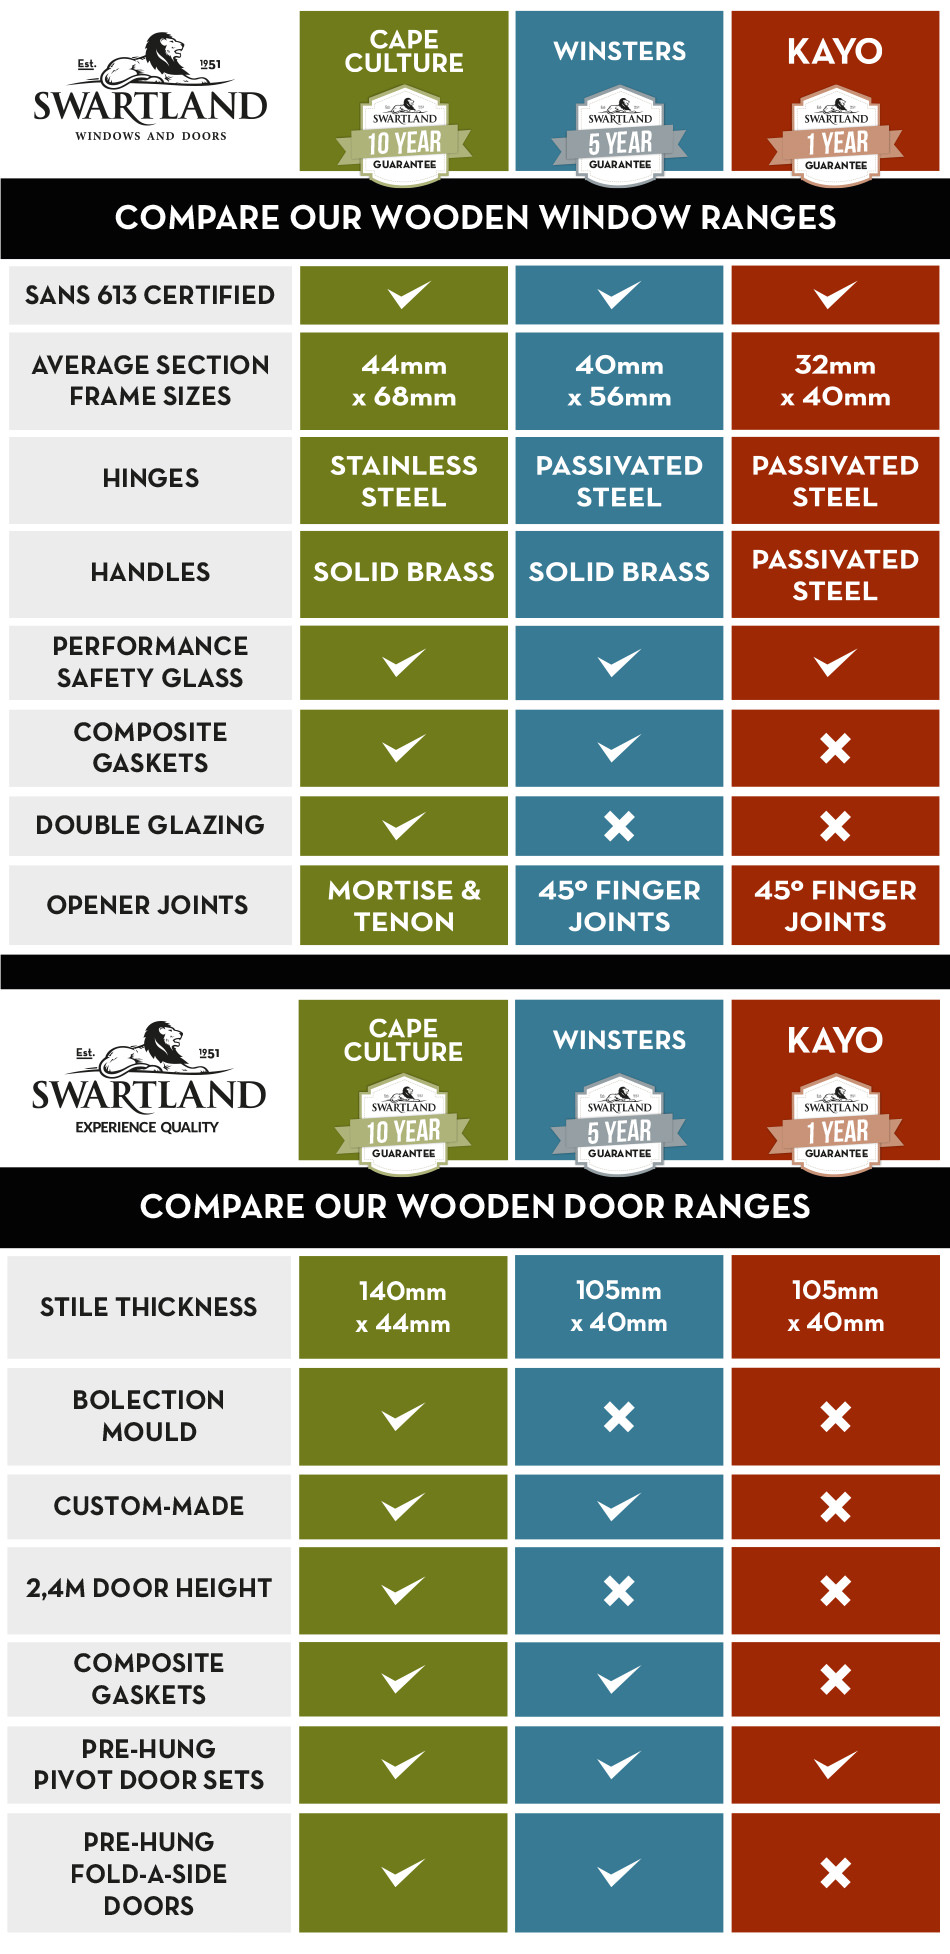 Swartland Range of wooden windows and doors